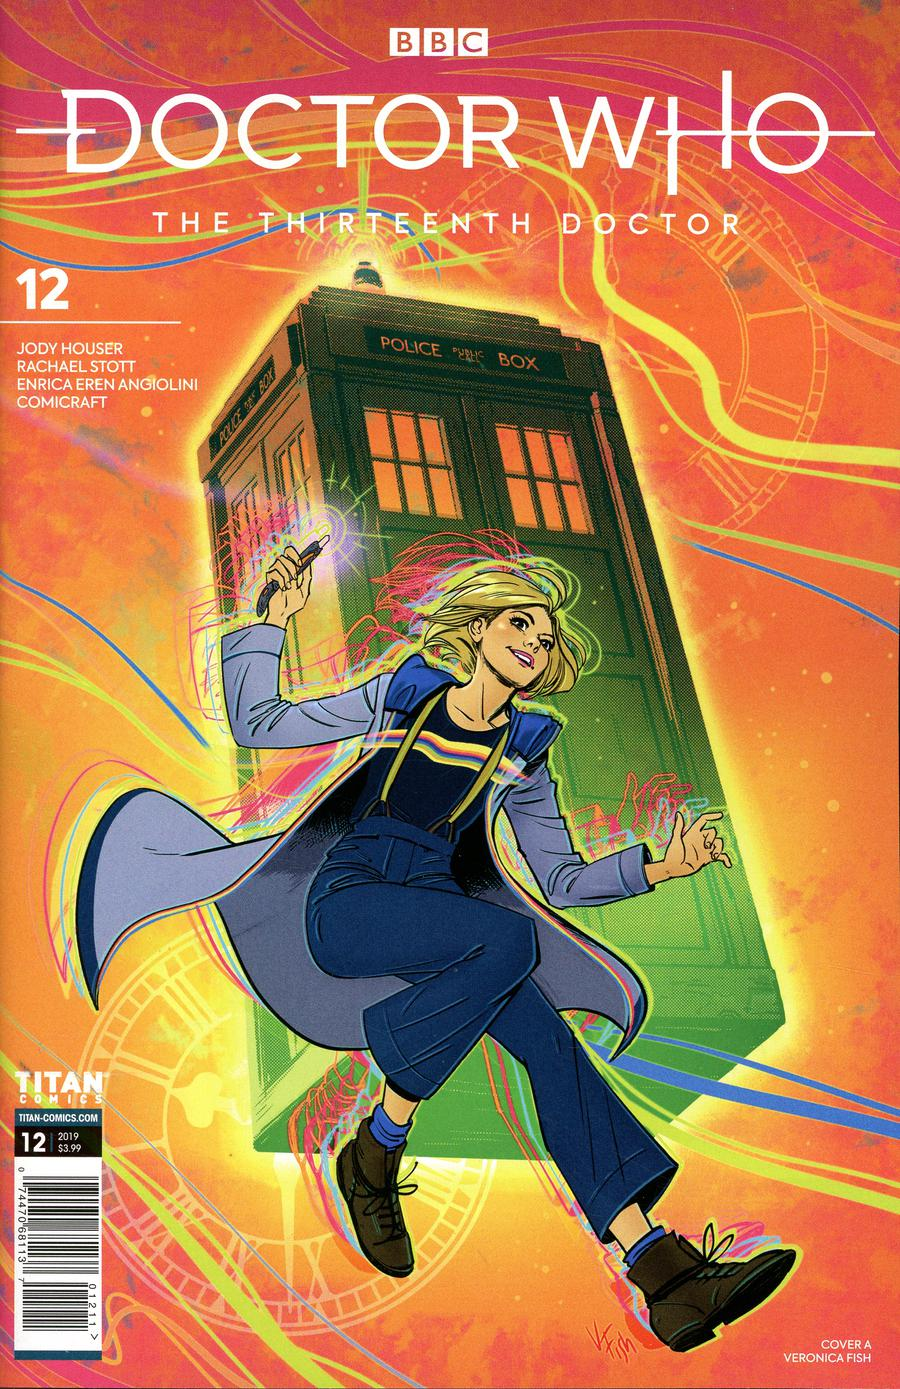 Doctor Who 13th Doctor #12 Cover A Regular Veronica Fish Cover